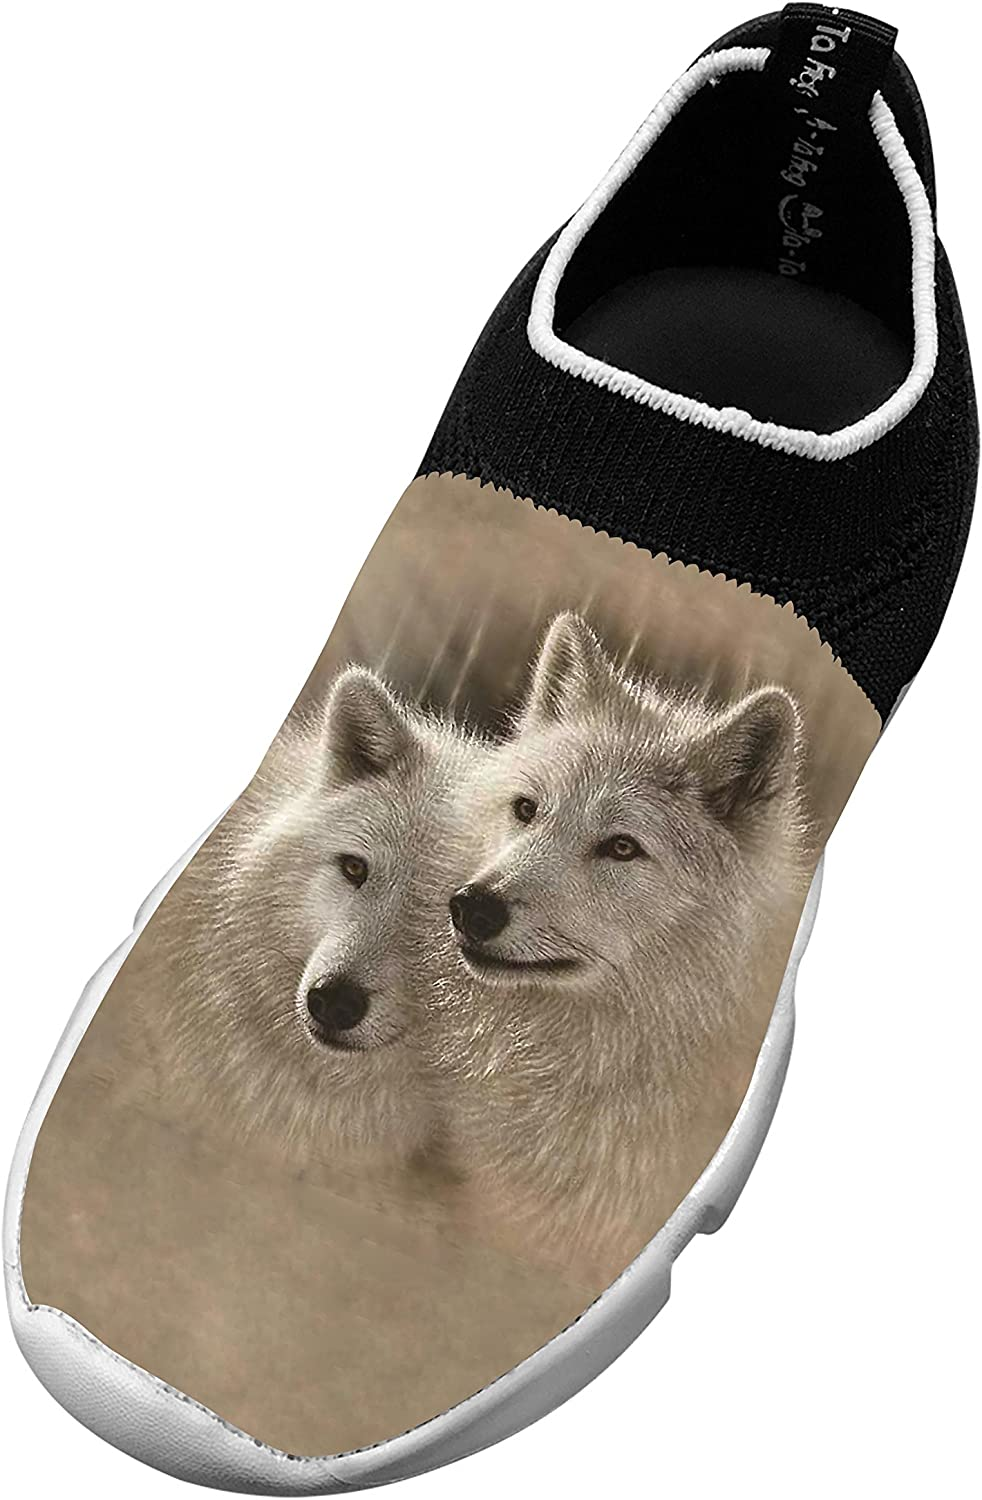 New Trendy Flywire Weaving Jogging Shoes 3D Ceative With Wolf For Unisex Child